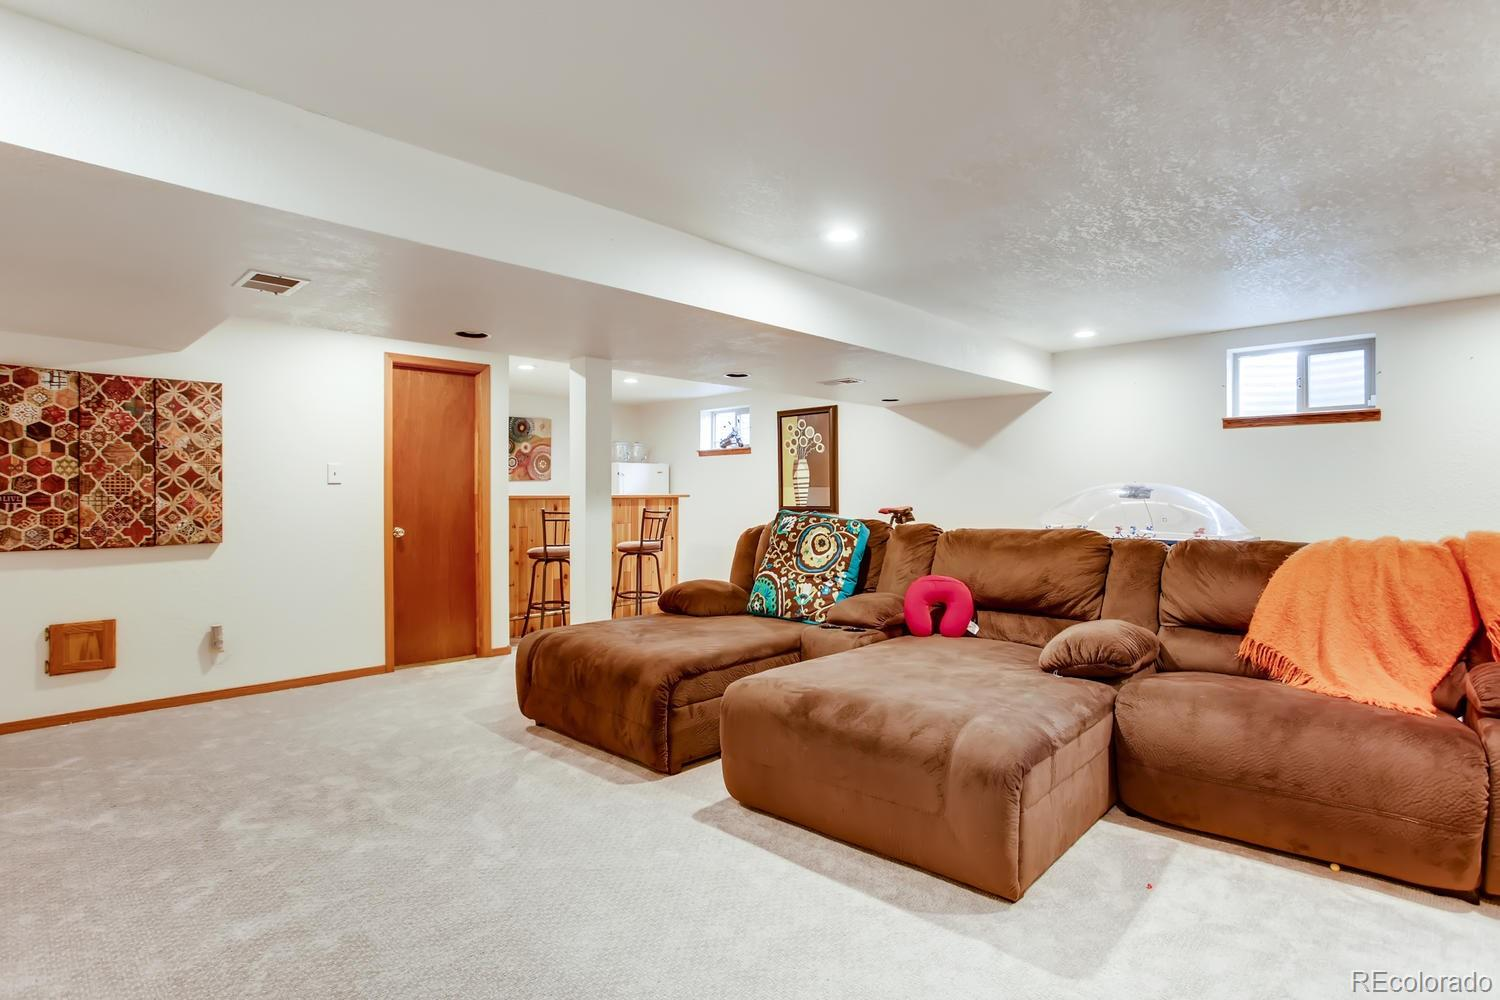 MLS# 4853831 - 18 - 13905 W 6th Place, Golden, CO 80401